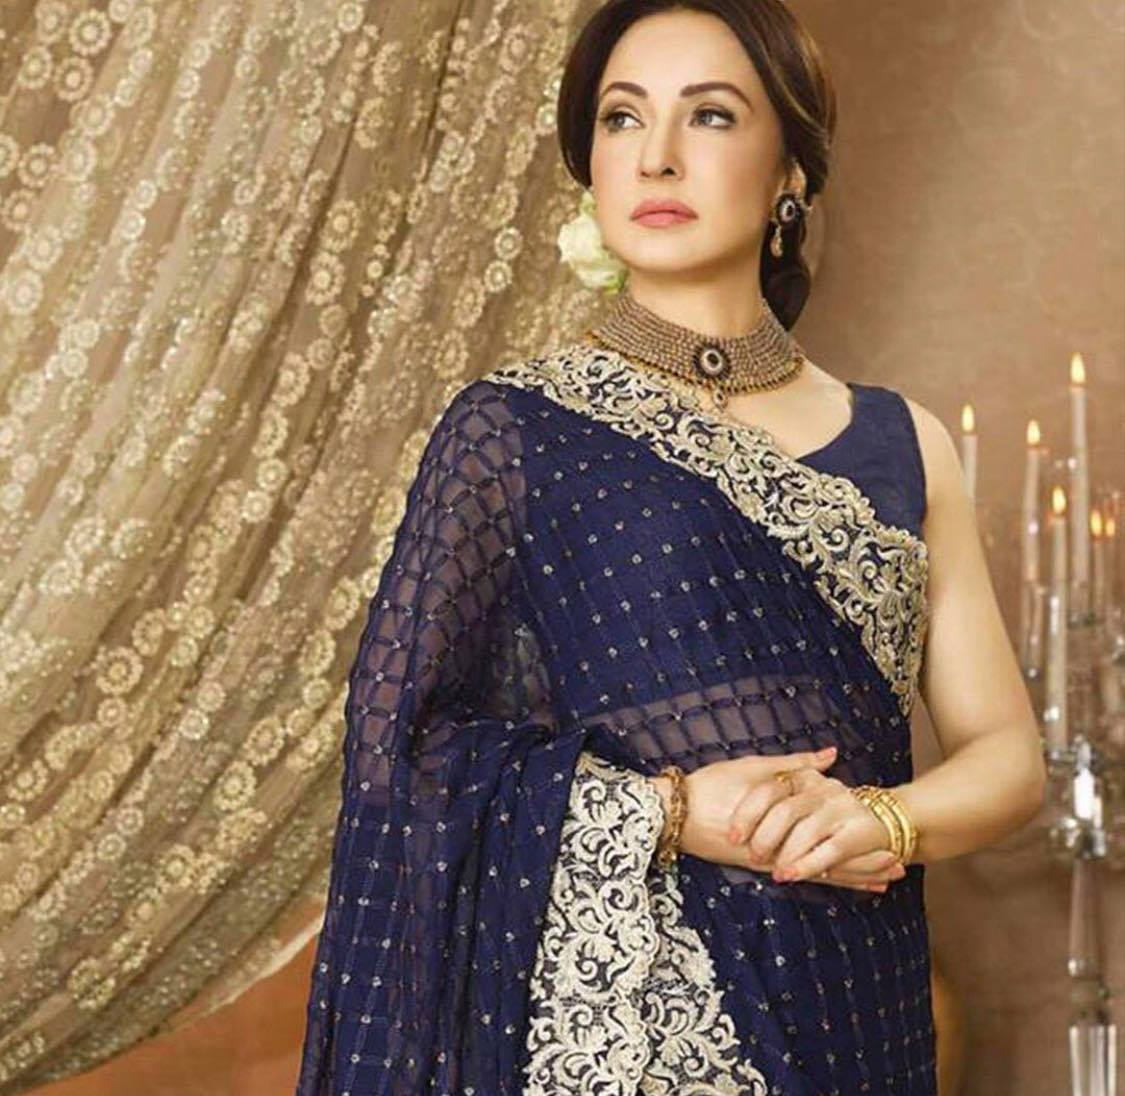 Pakistani Celebrities Who Are From Rich Families